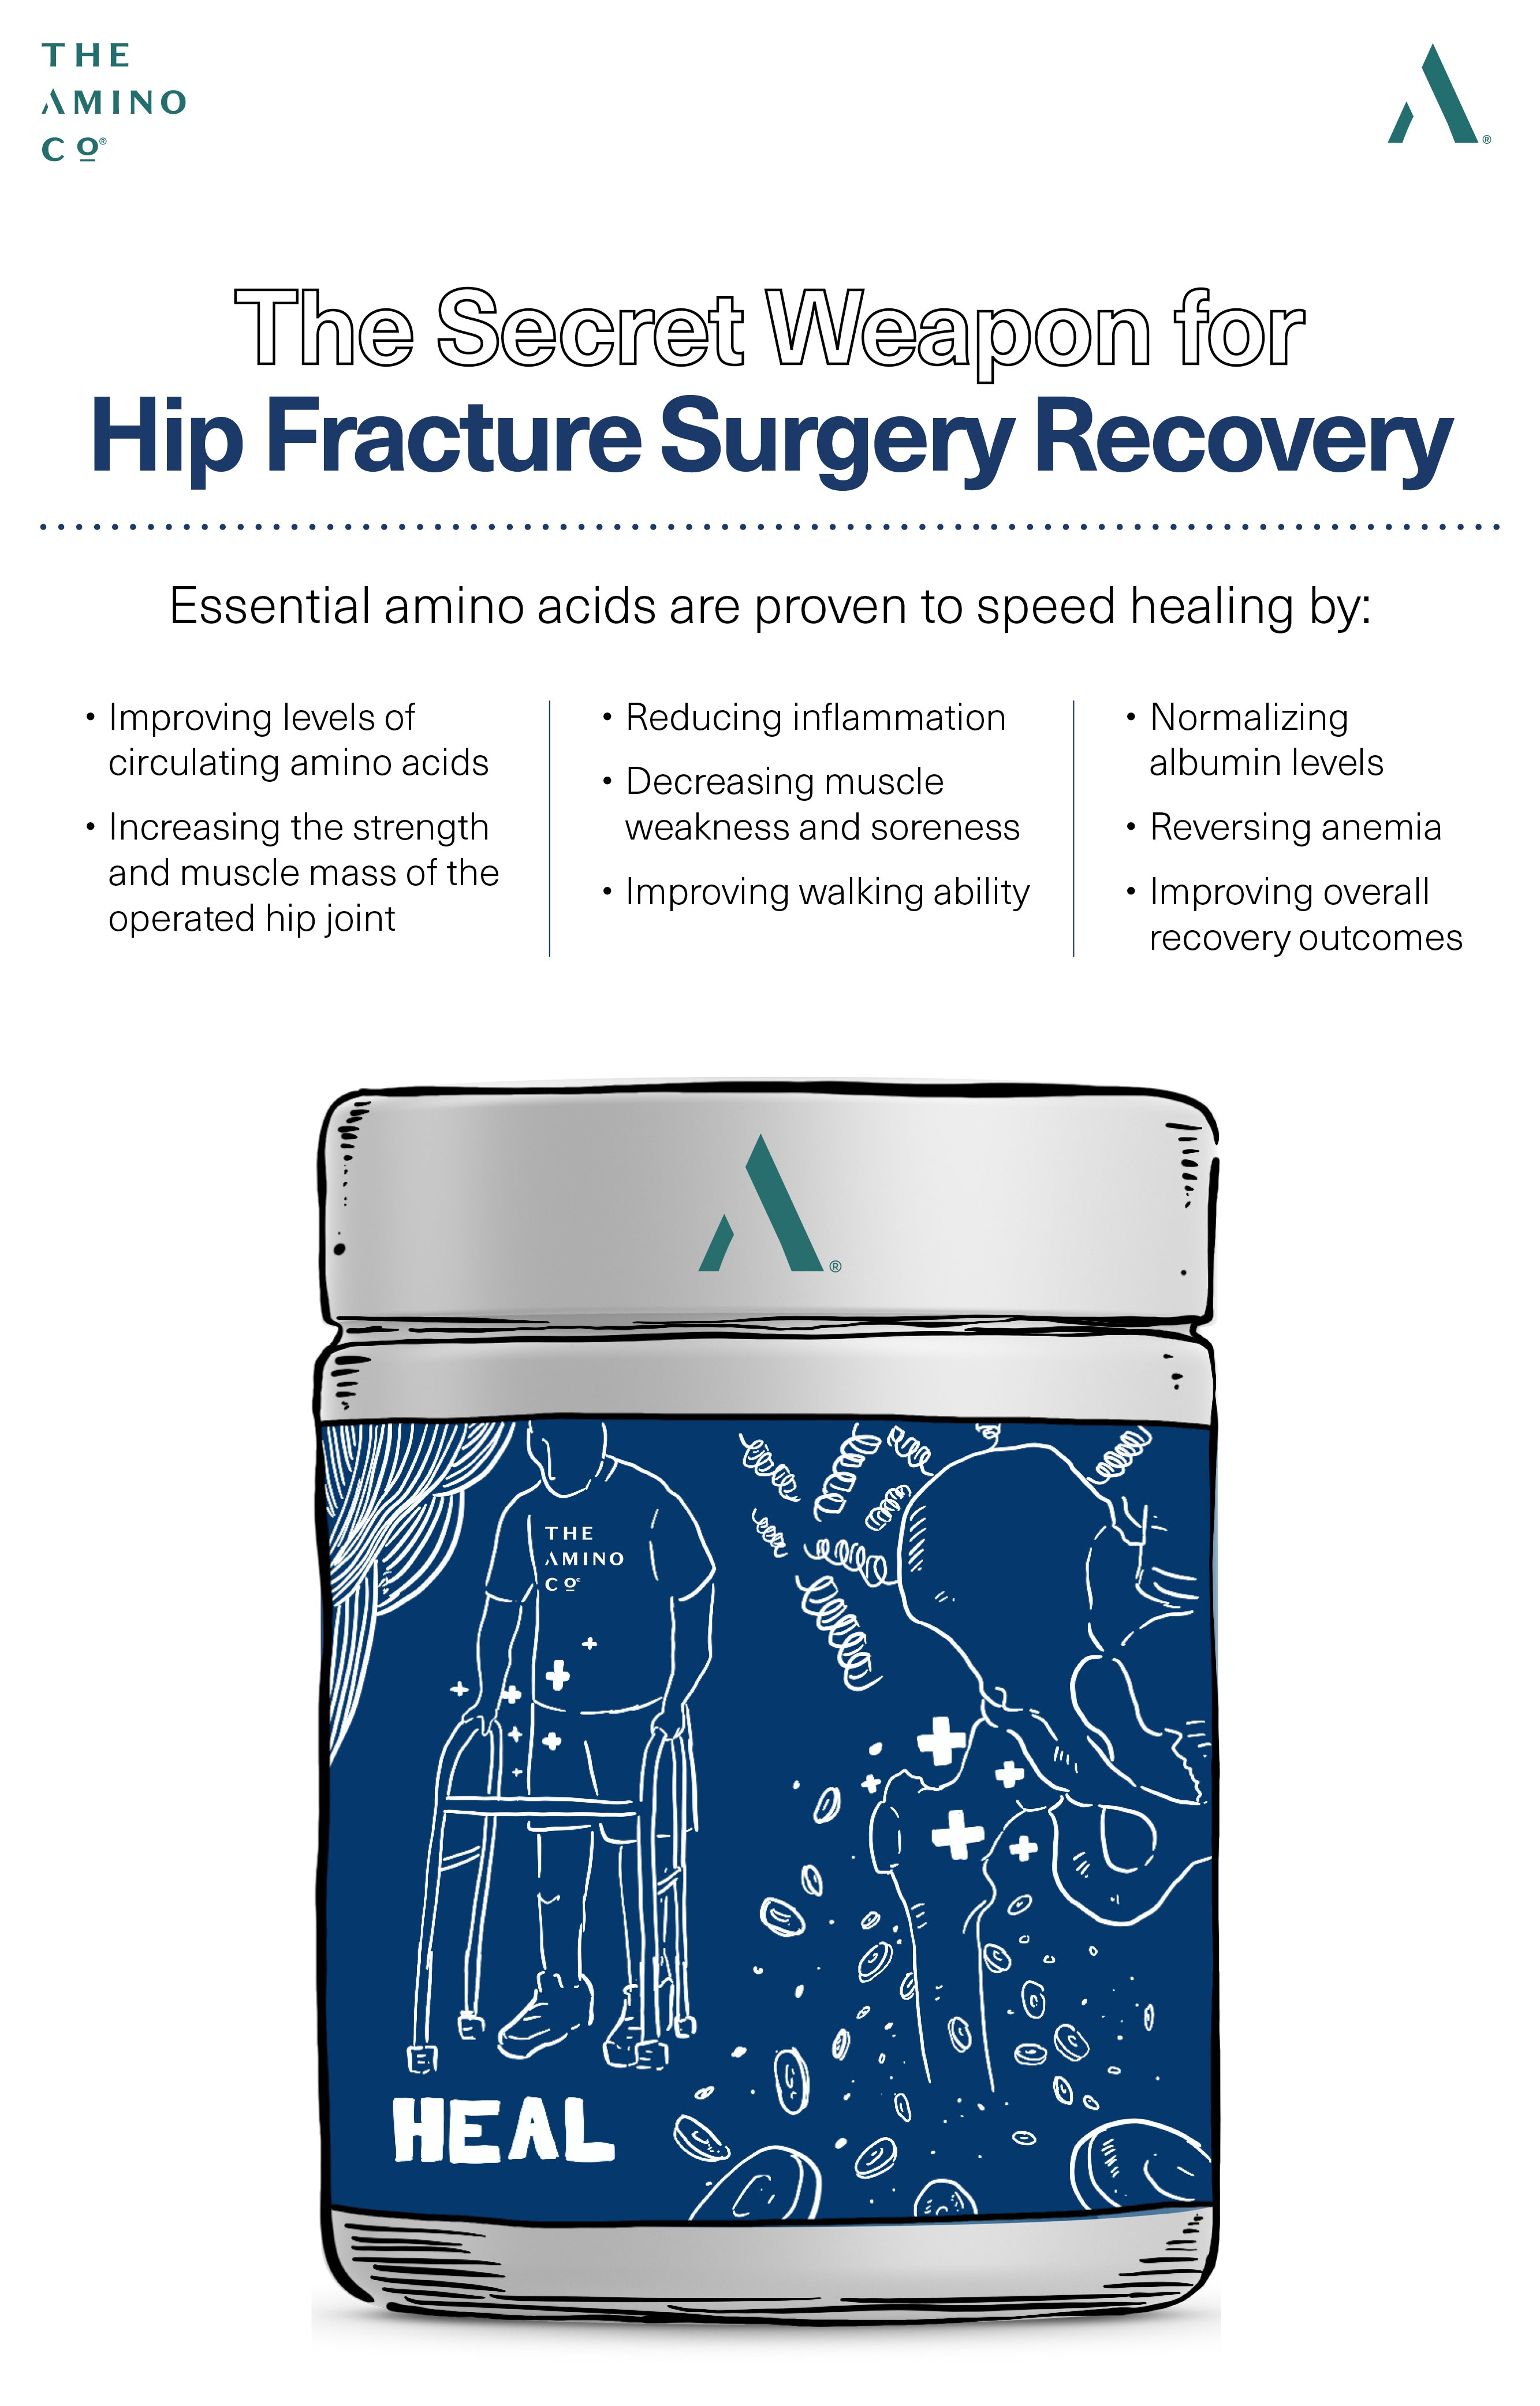 The Secret Weapon for Hip Fracture Surgery Recovery